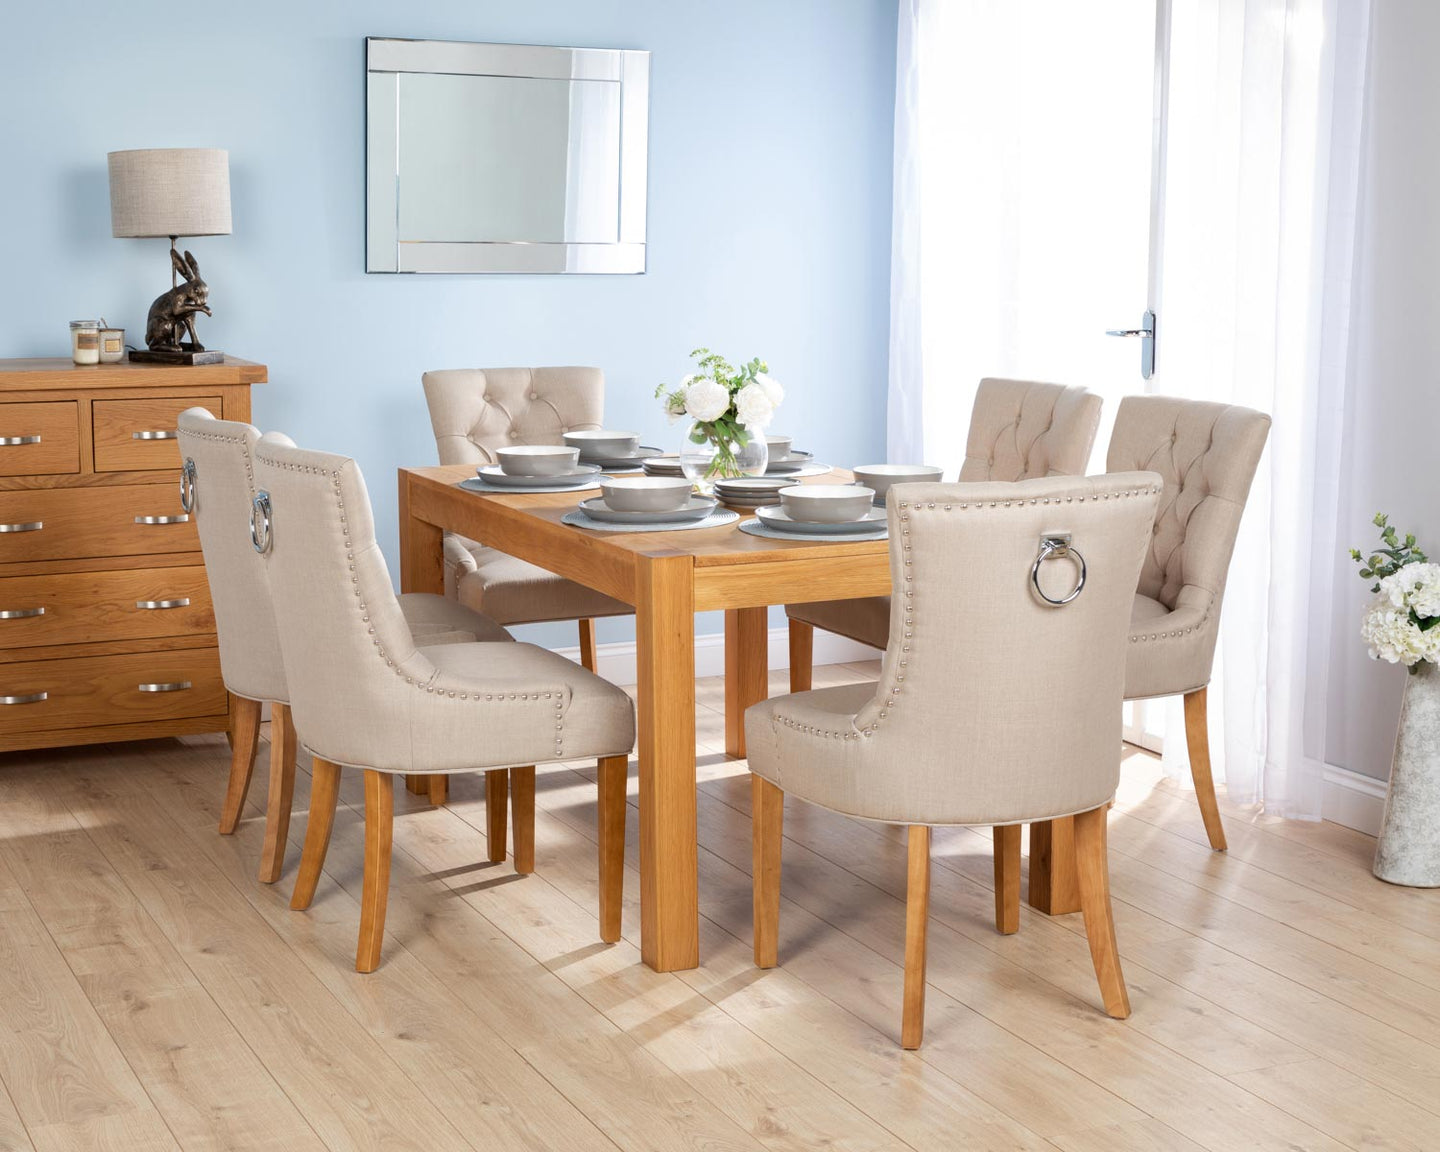 Rectangular Oak Dining Table and 6 Cream Linen Verona Dining Chairs with Chrome Knocker and Oak Legs